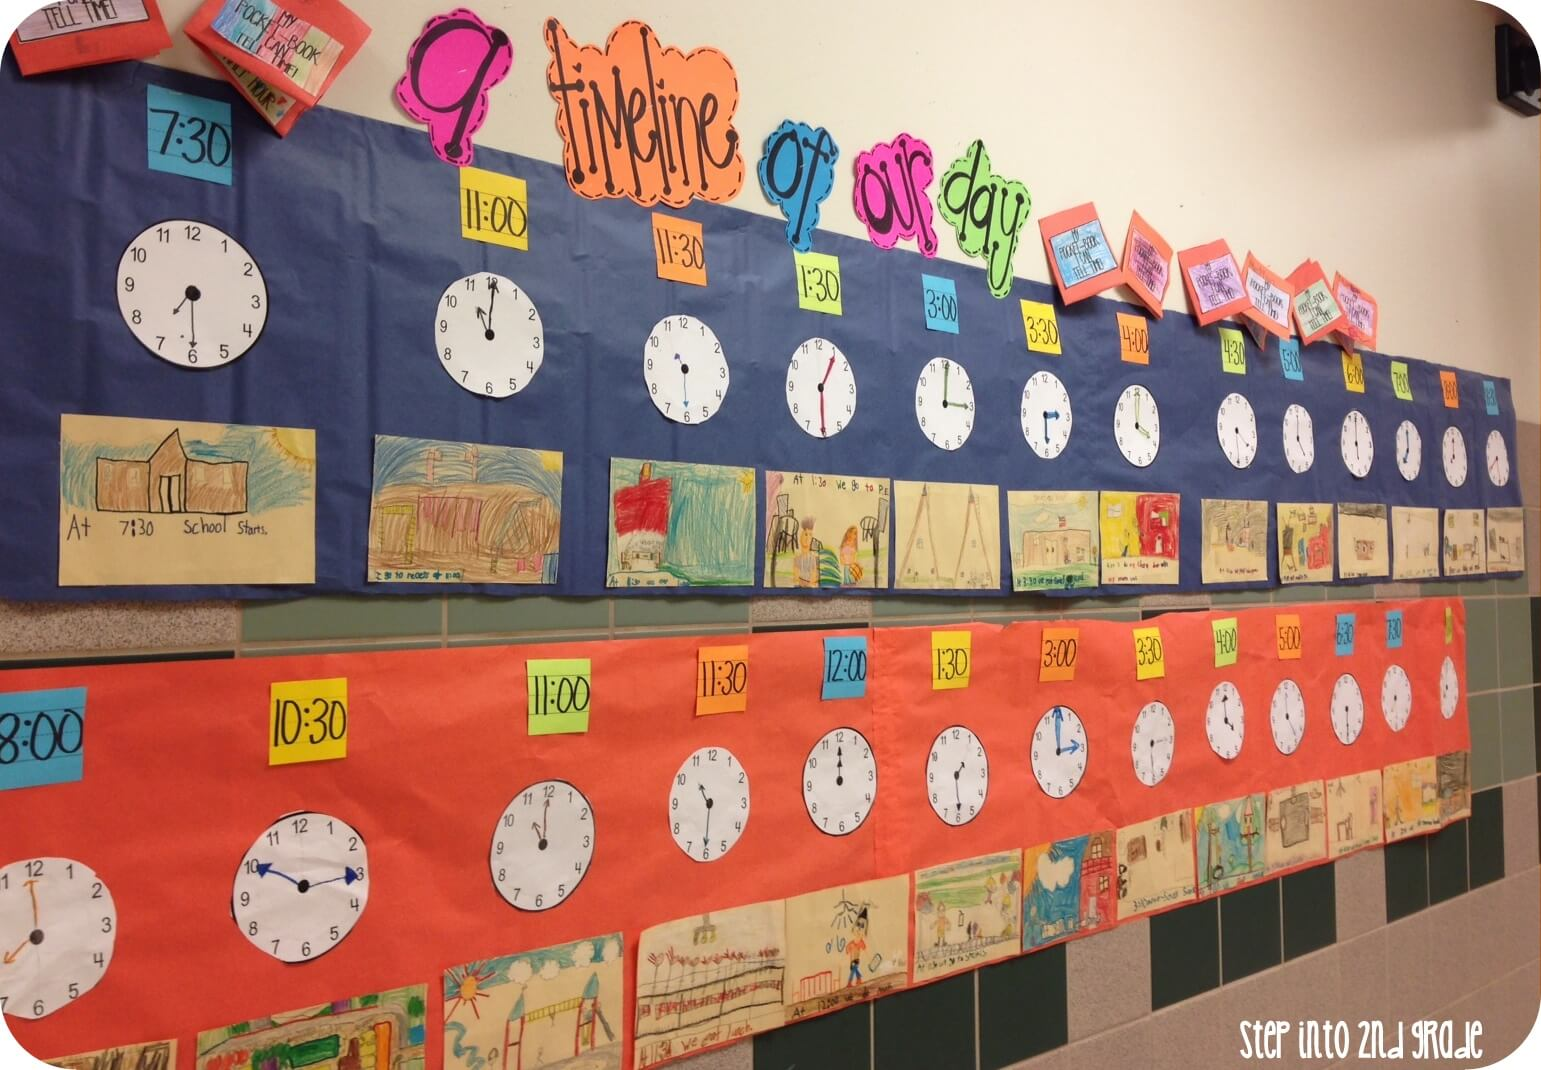 Worksheet Teaching Time To Second Graders its all about time step into 2nd grade on wednesday we reviewed a little bit more but only focused to the hour and half after practicing their individual clocks for a